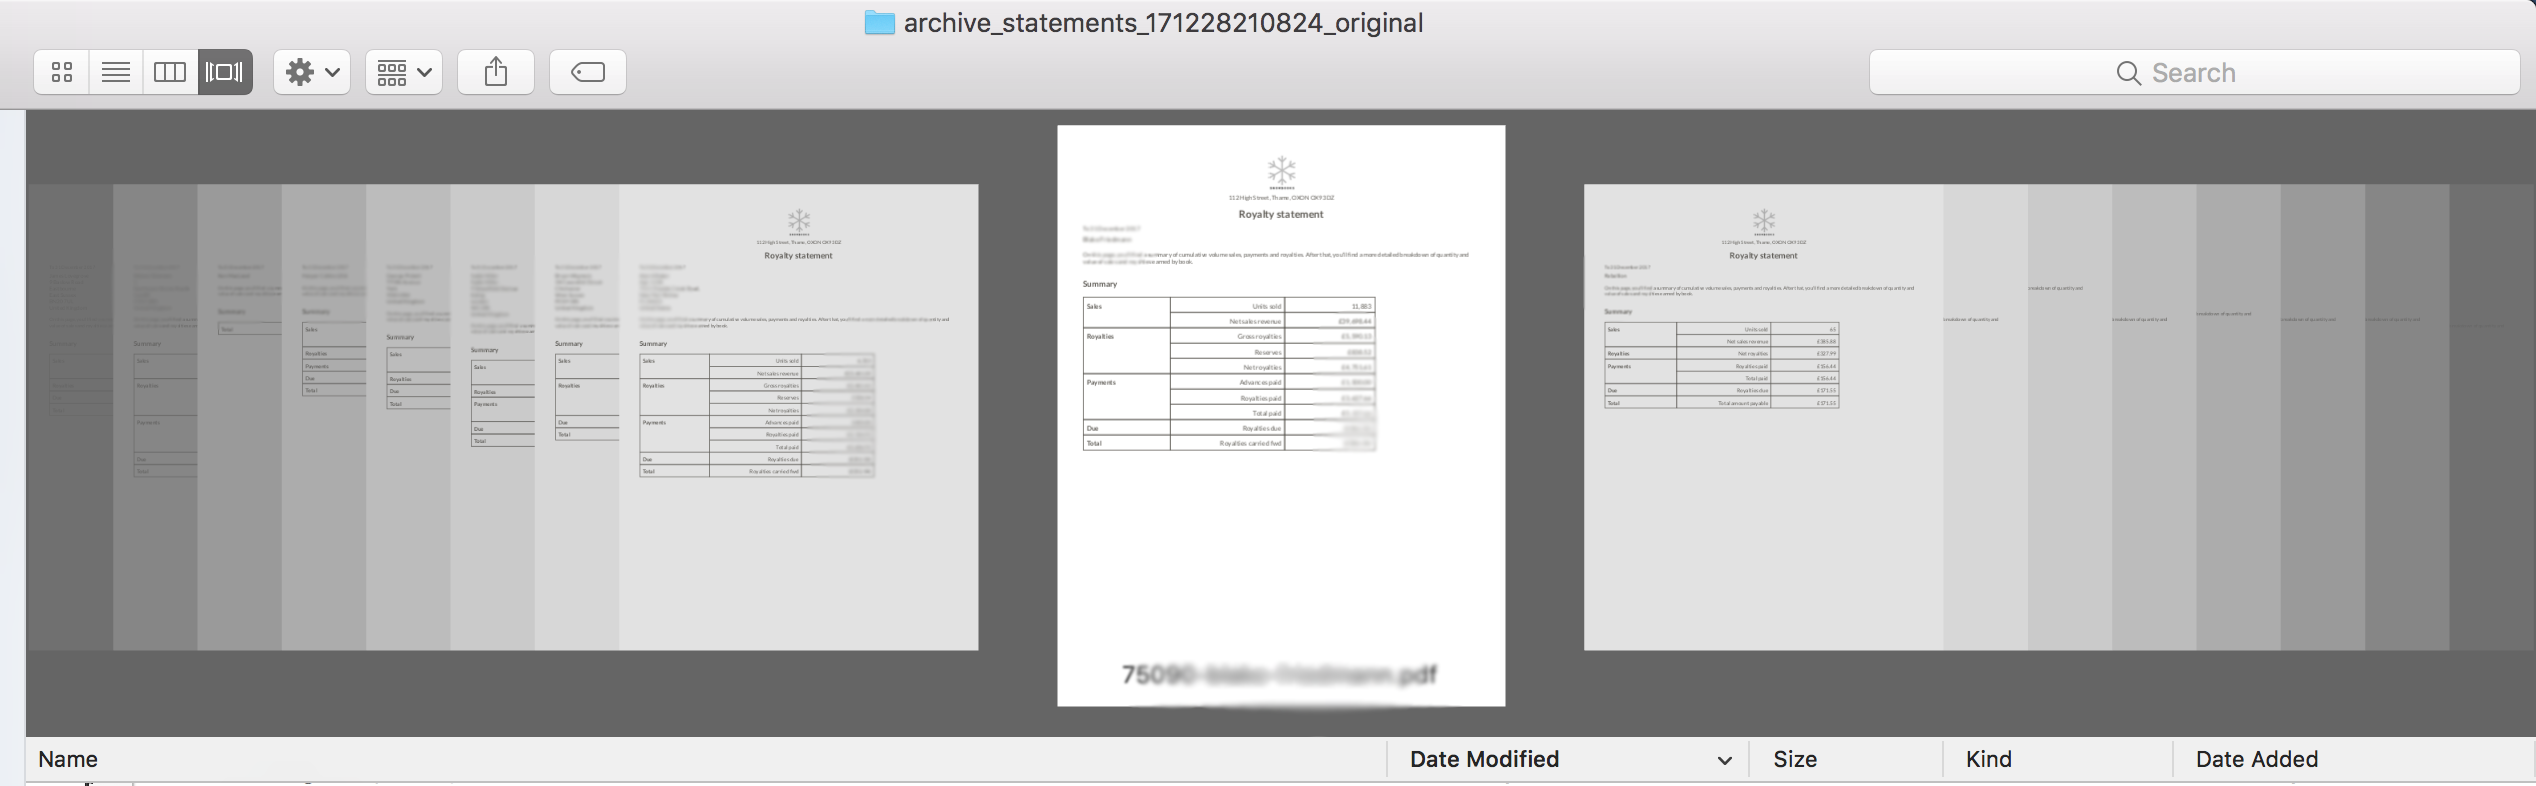 A screenshot of Finder on a Mac showing a sheaf of automatically generated royalty statements. Consonance's PDFs also open on a Windows machine!